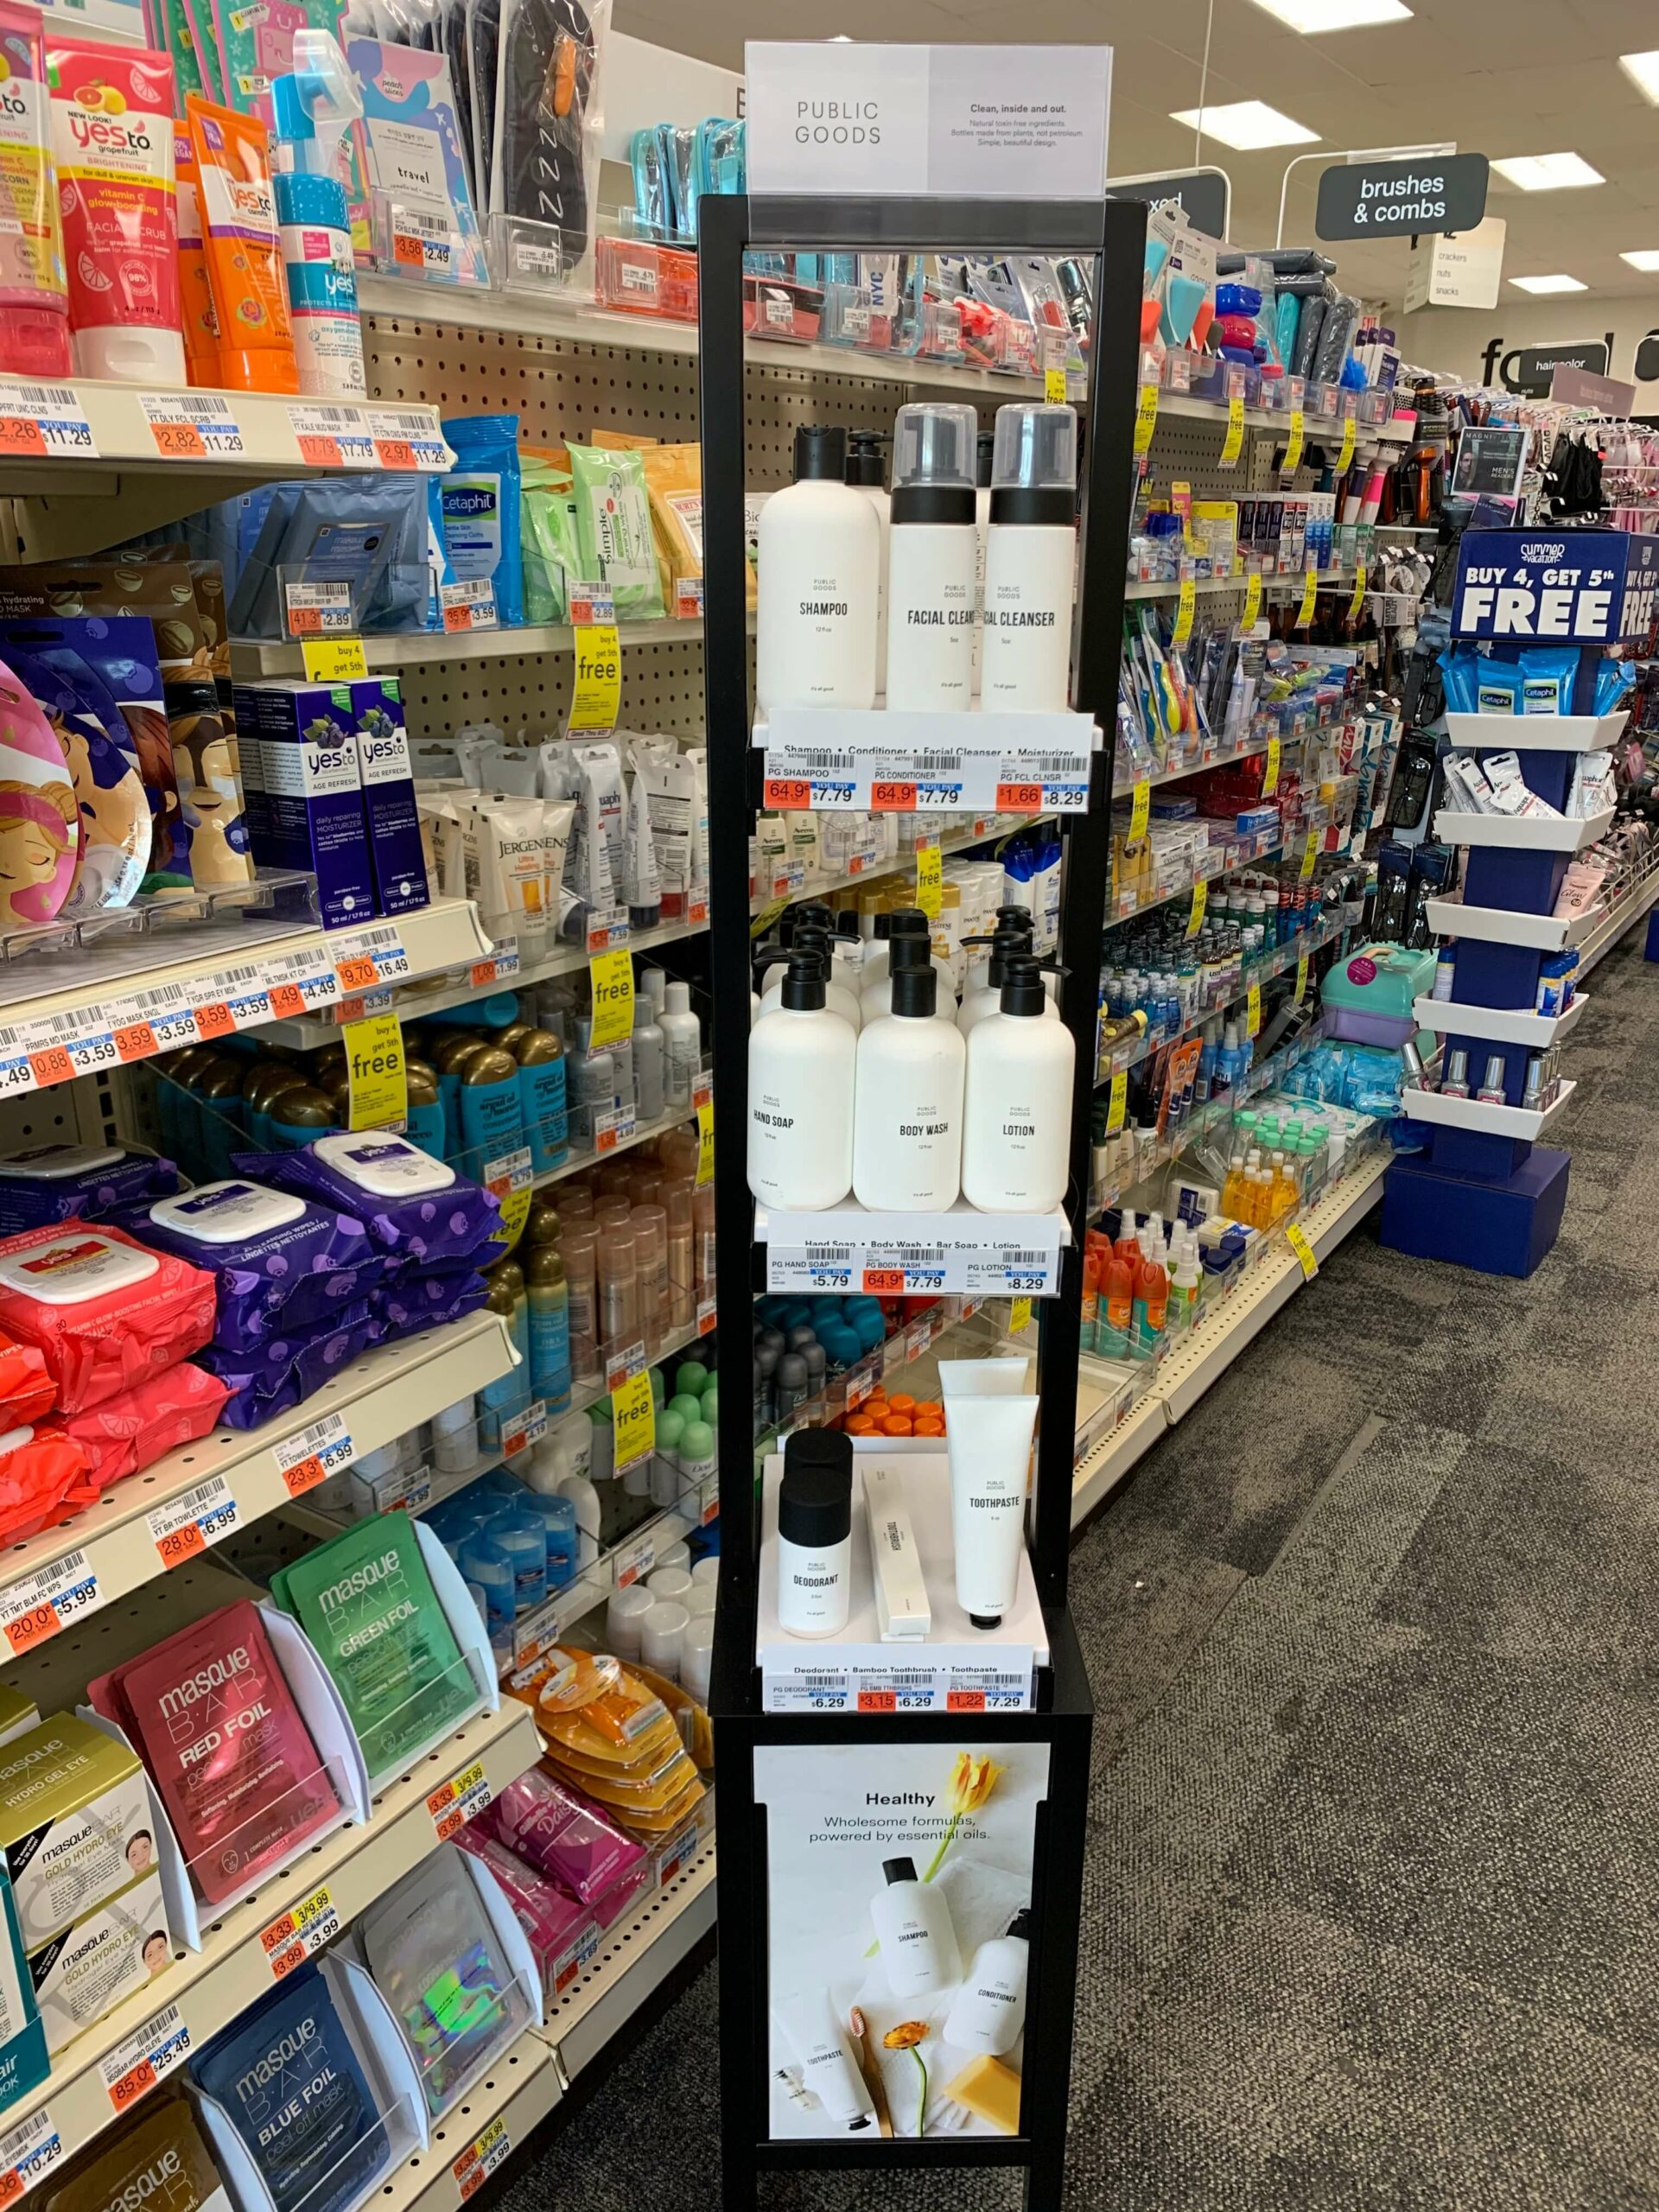 CVS tower featuring public goods shampoo, facial cleanser, hand soap, body wash, lotion, deodorant, toothbrush, toothpaste